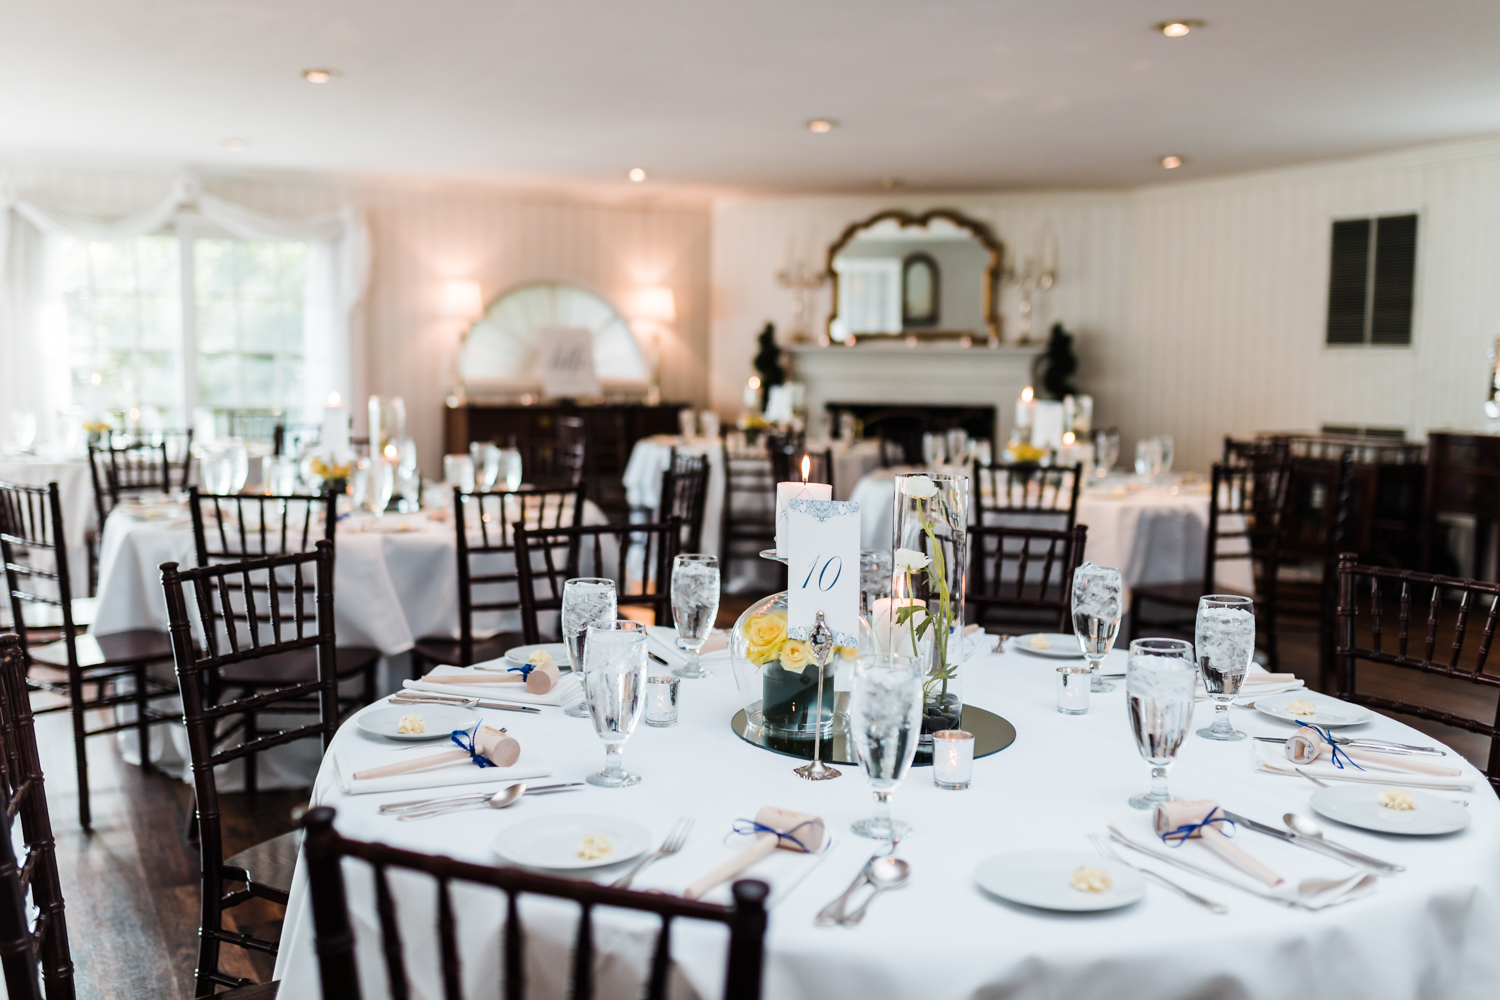 beautiful reception spaces for wedding in Maryland near Carroll County, MD